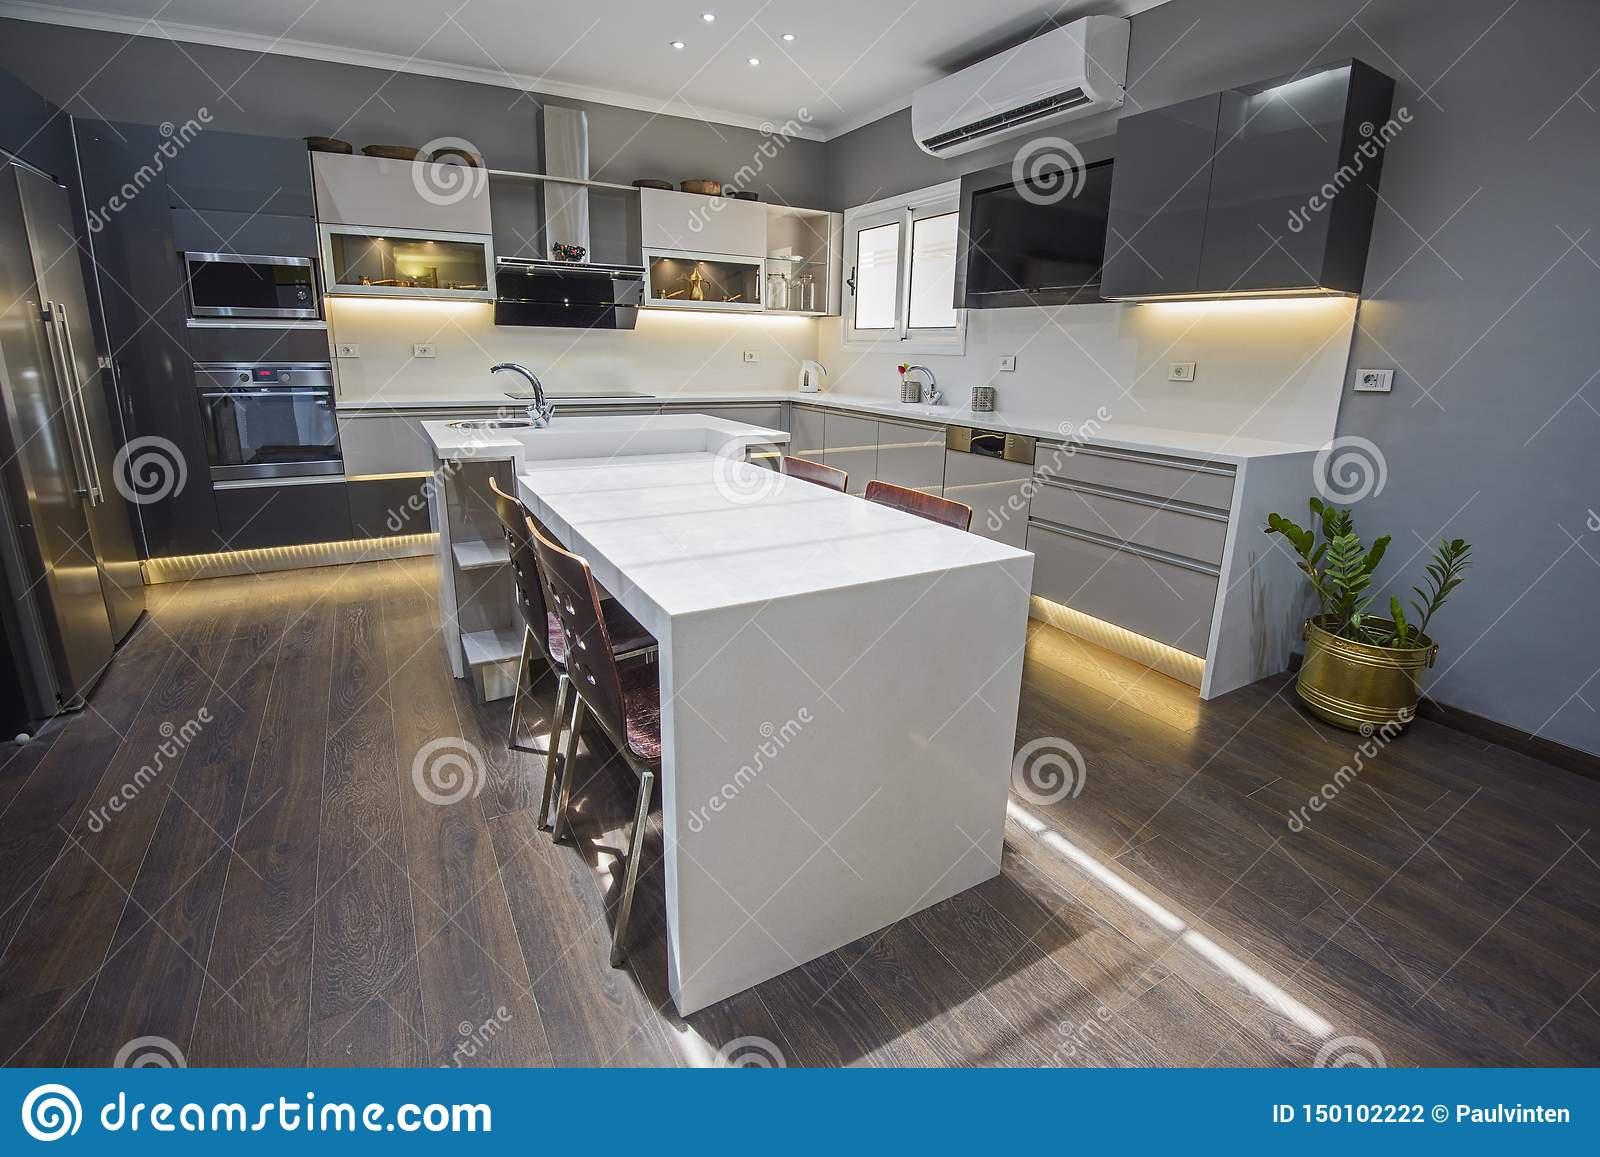 Modern Kitchen Design In A Luxury Apartment Stock Photo Image Of Architecture Chair 150102222